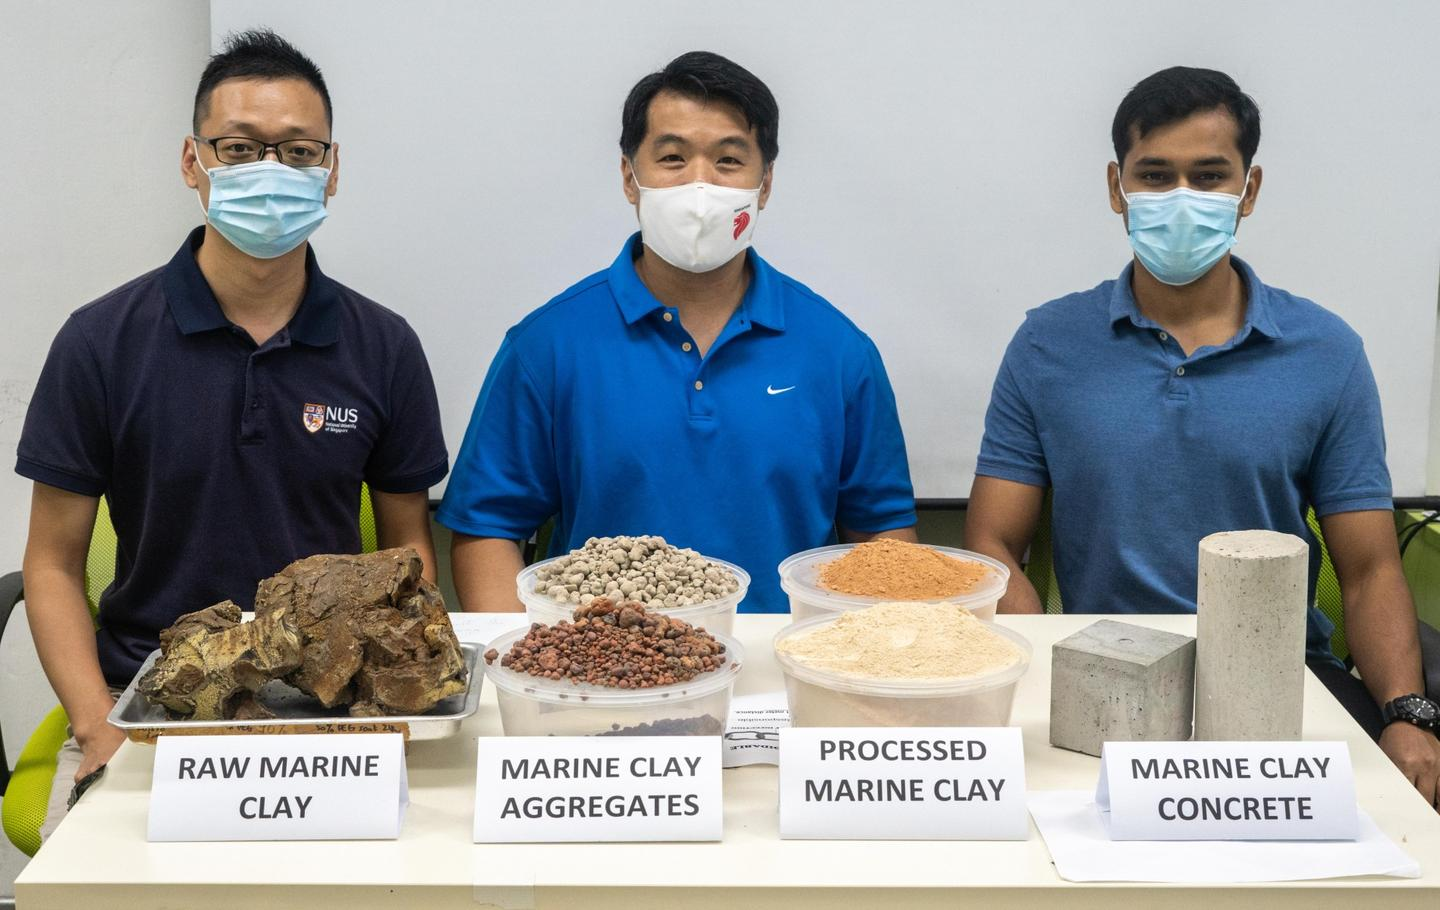 Researchers from the National University of Singapore' Centre for Advanced Materials with samples of their eco-friendly concrete that incorporates waste clay